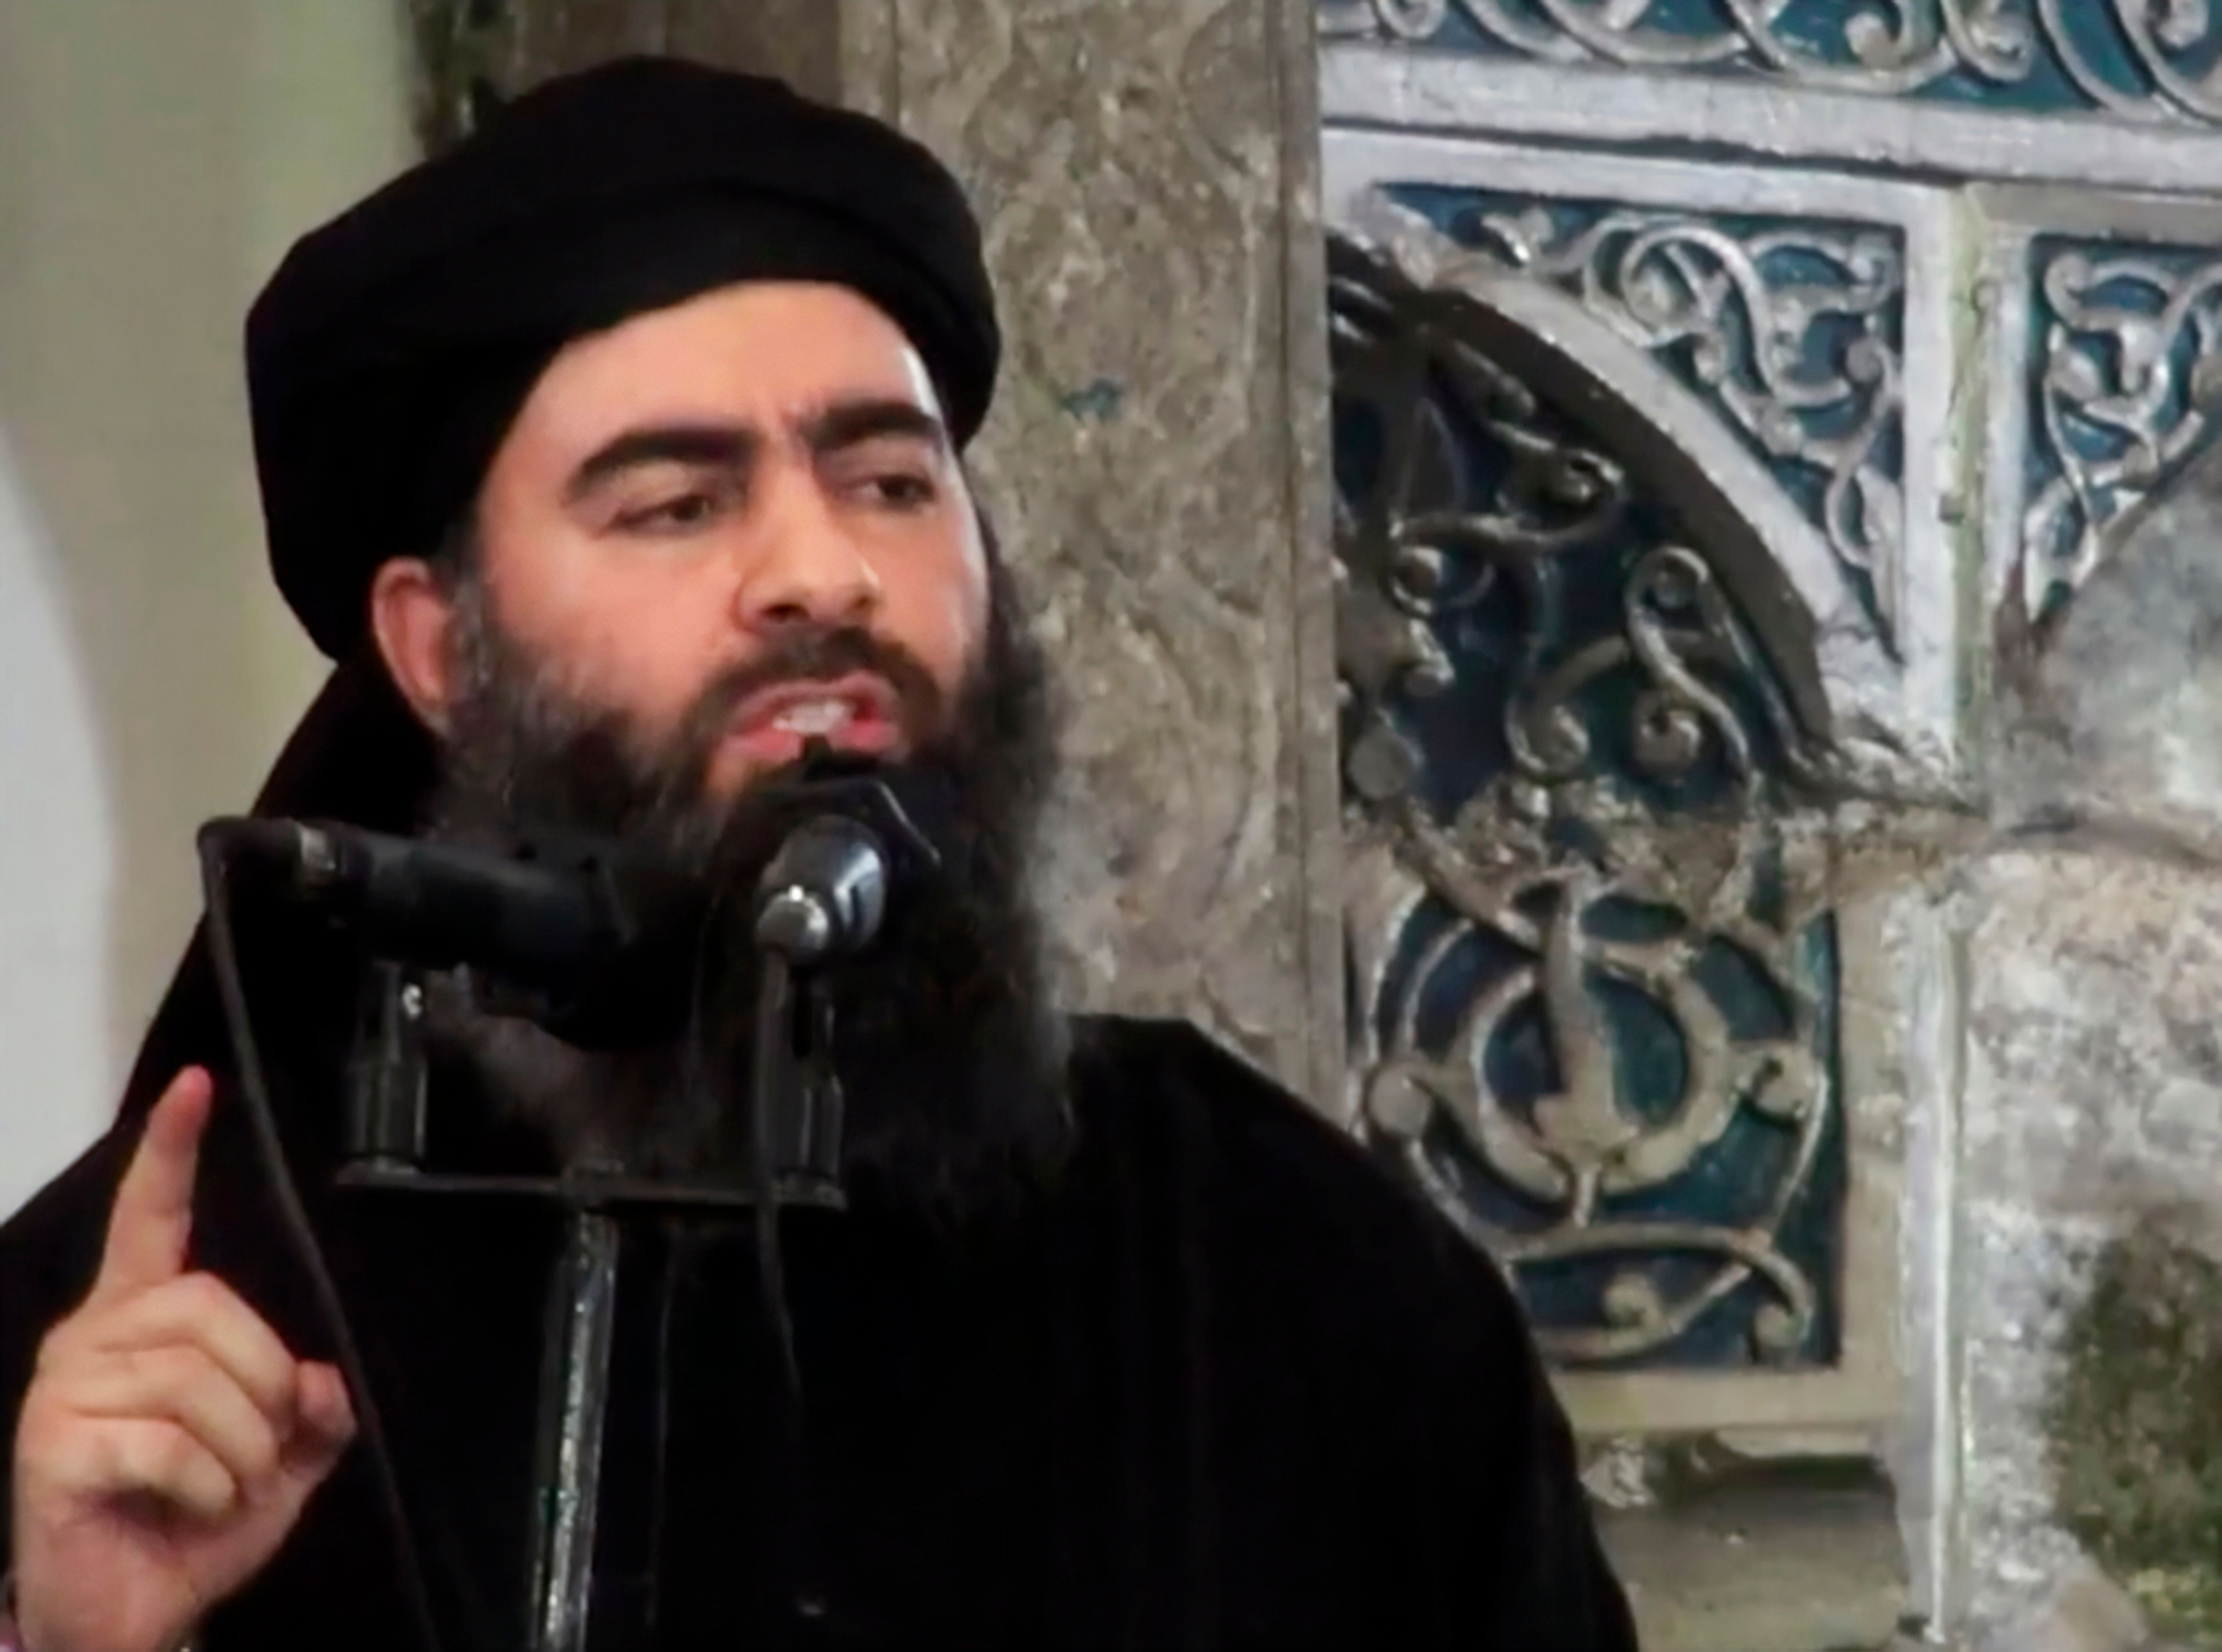 FILE - This image made from video posted on a militant website July 5, 2014, purports to show the leader of the Islamic State group, Abu Bakr al-Baghdadi, delivering a sermon at a mosque in Iraq during his first public appearance. President Donald Trump declared victory over the Islamic State group in Syria in a tweet Thursday, Dec. 20, 2018, but the militants remain a deadly force, and U.S. partners warn a premature U.S. withdrawal will allow them to storm back. The jihadists still hold territory in Syria and top leaders, including the group's self-styled caliph Abu Bakr al-Baghdadi, remain at large. (Militant video via AP, File)